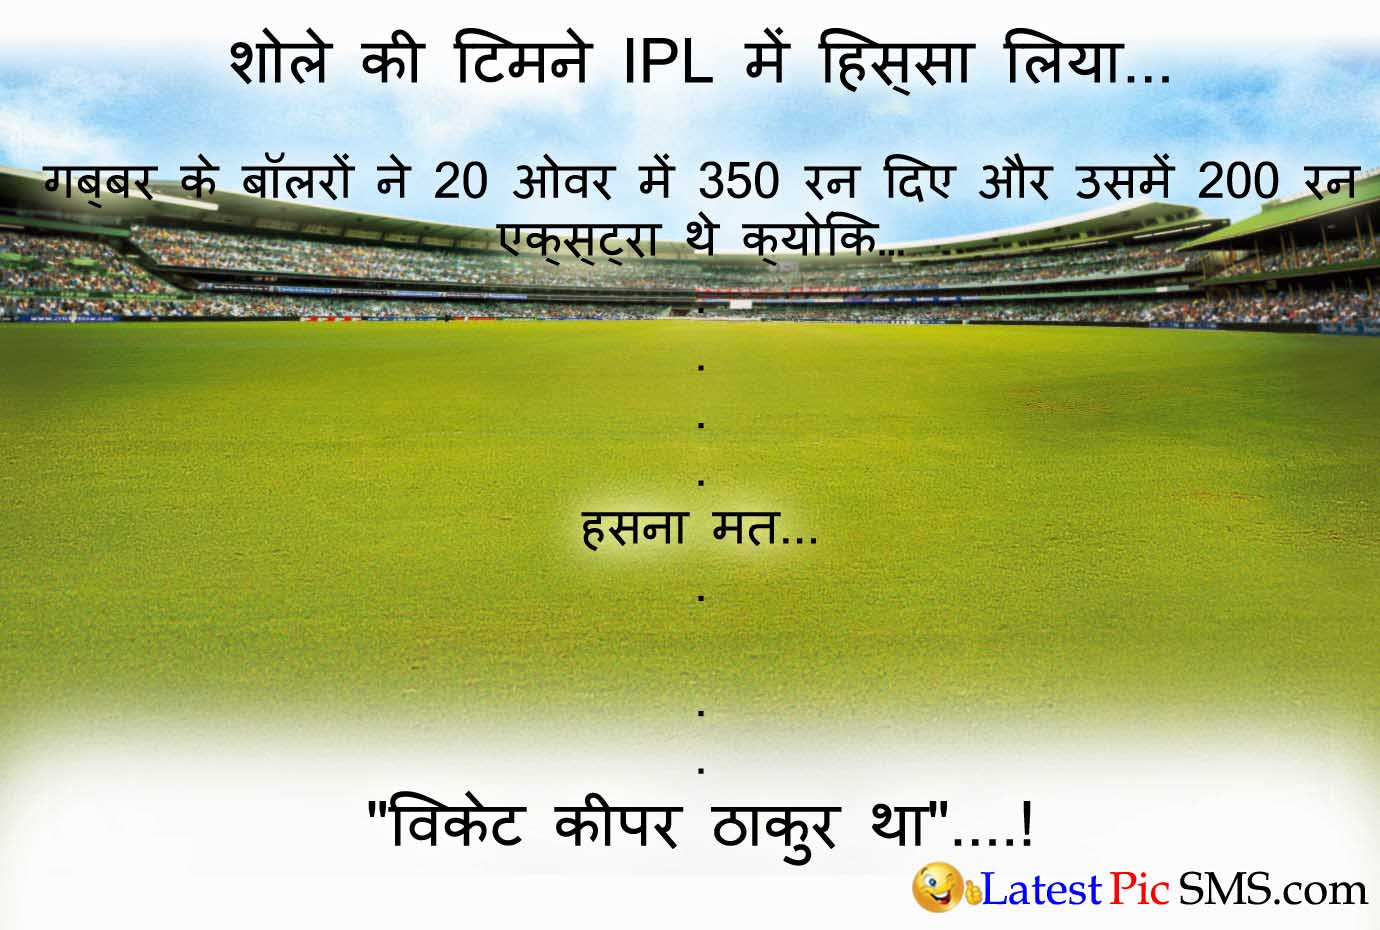 ipl cricket Hindi jokes